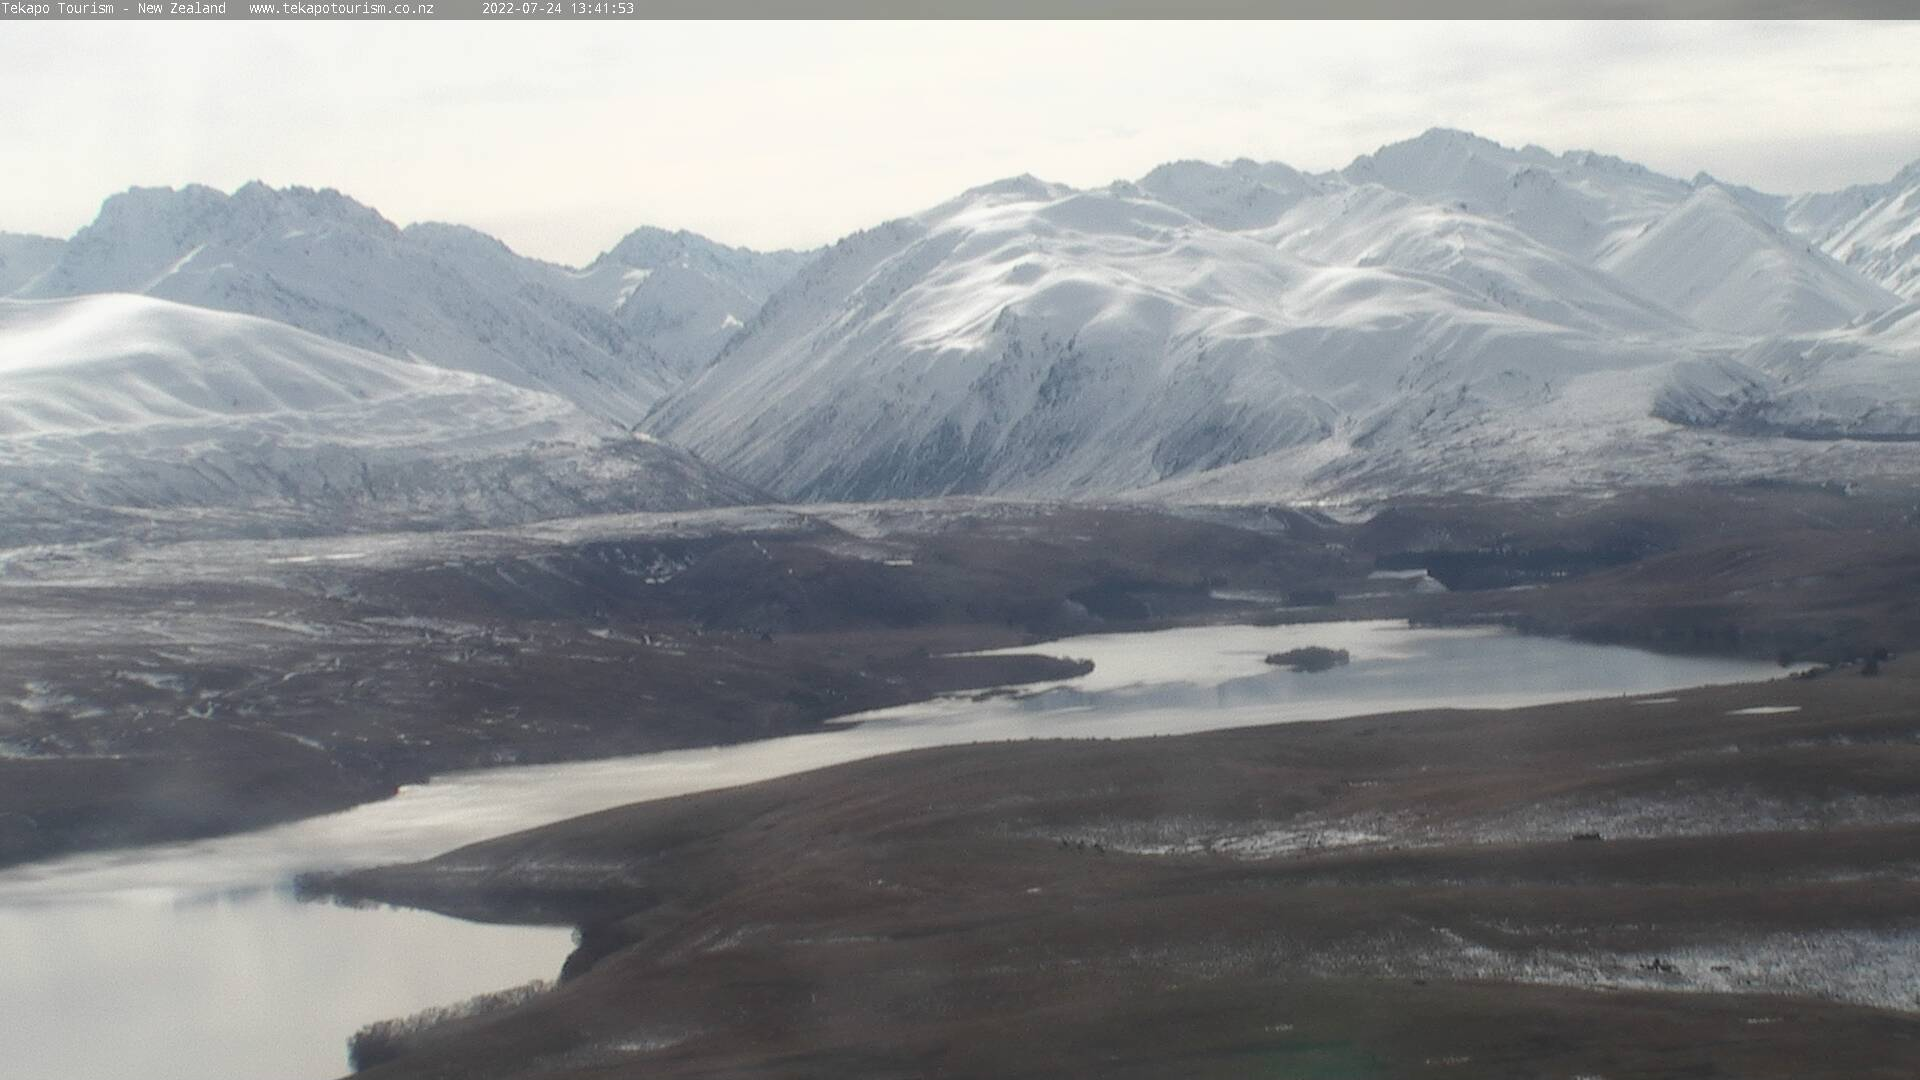 Tekapo Tourism's HD webcam - Lake Alexandrina and Cass Valley